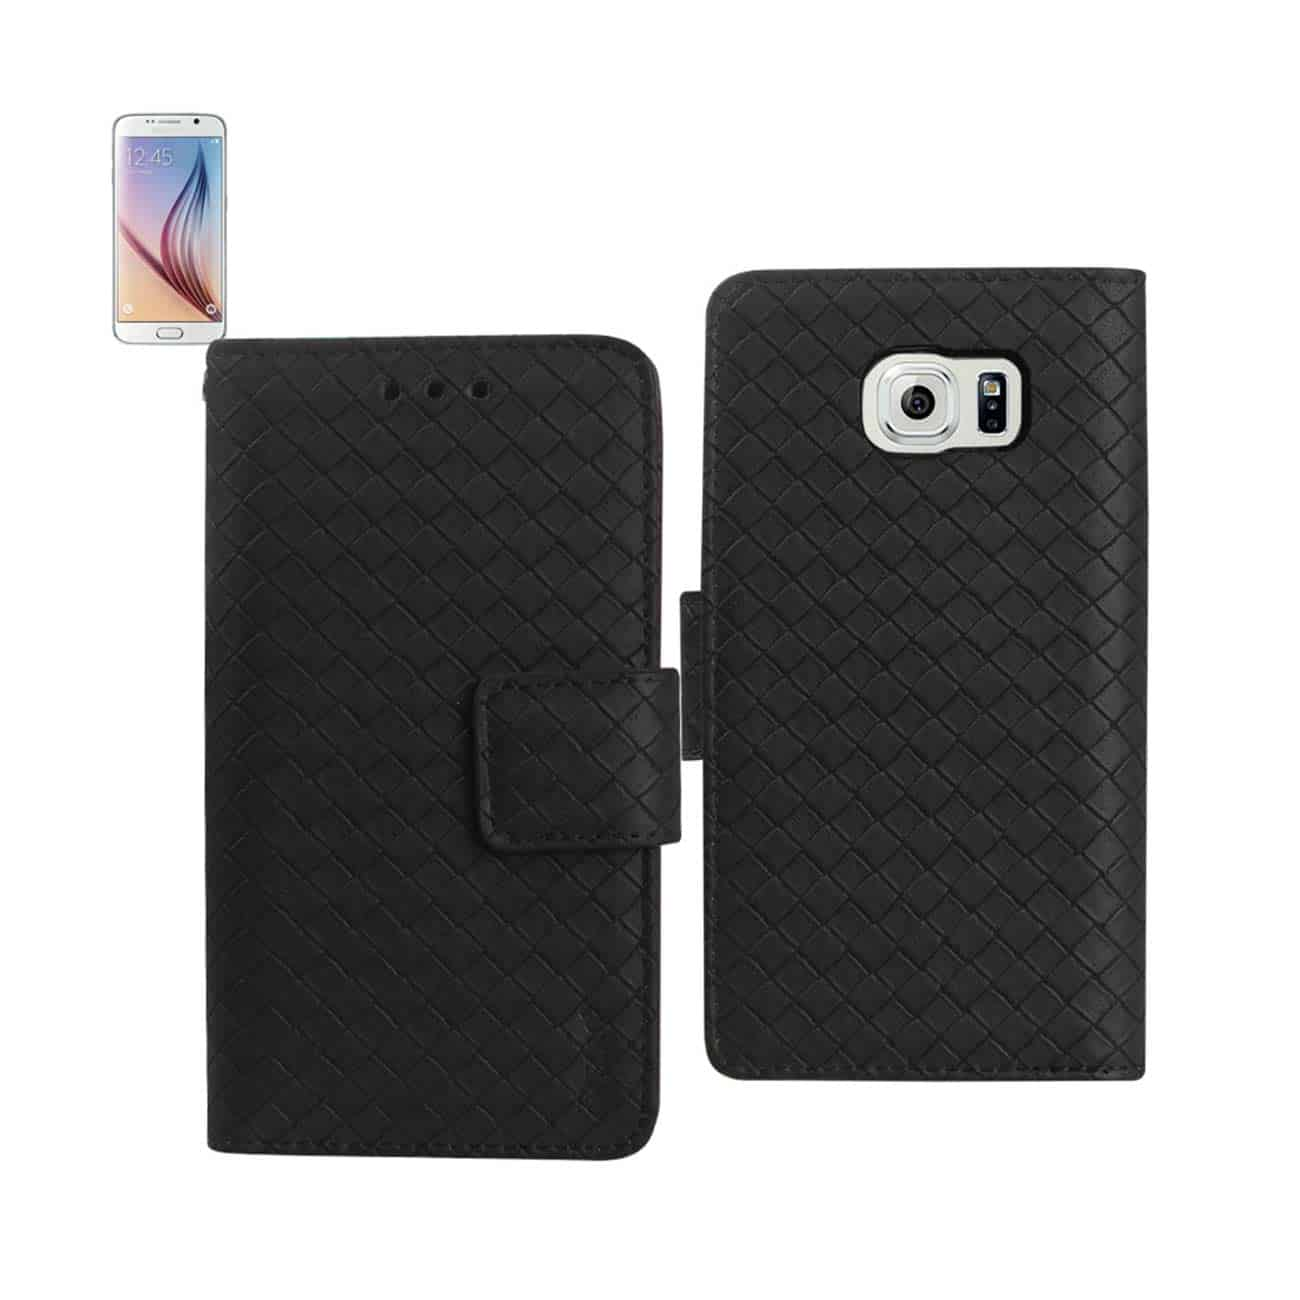 SAMSUNG GALAXY S6 BRAIDED WALLET CASE IN BLACK